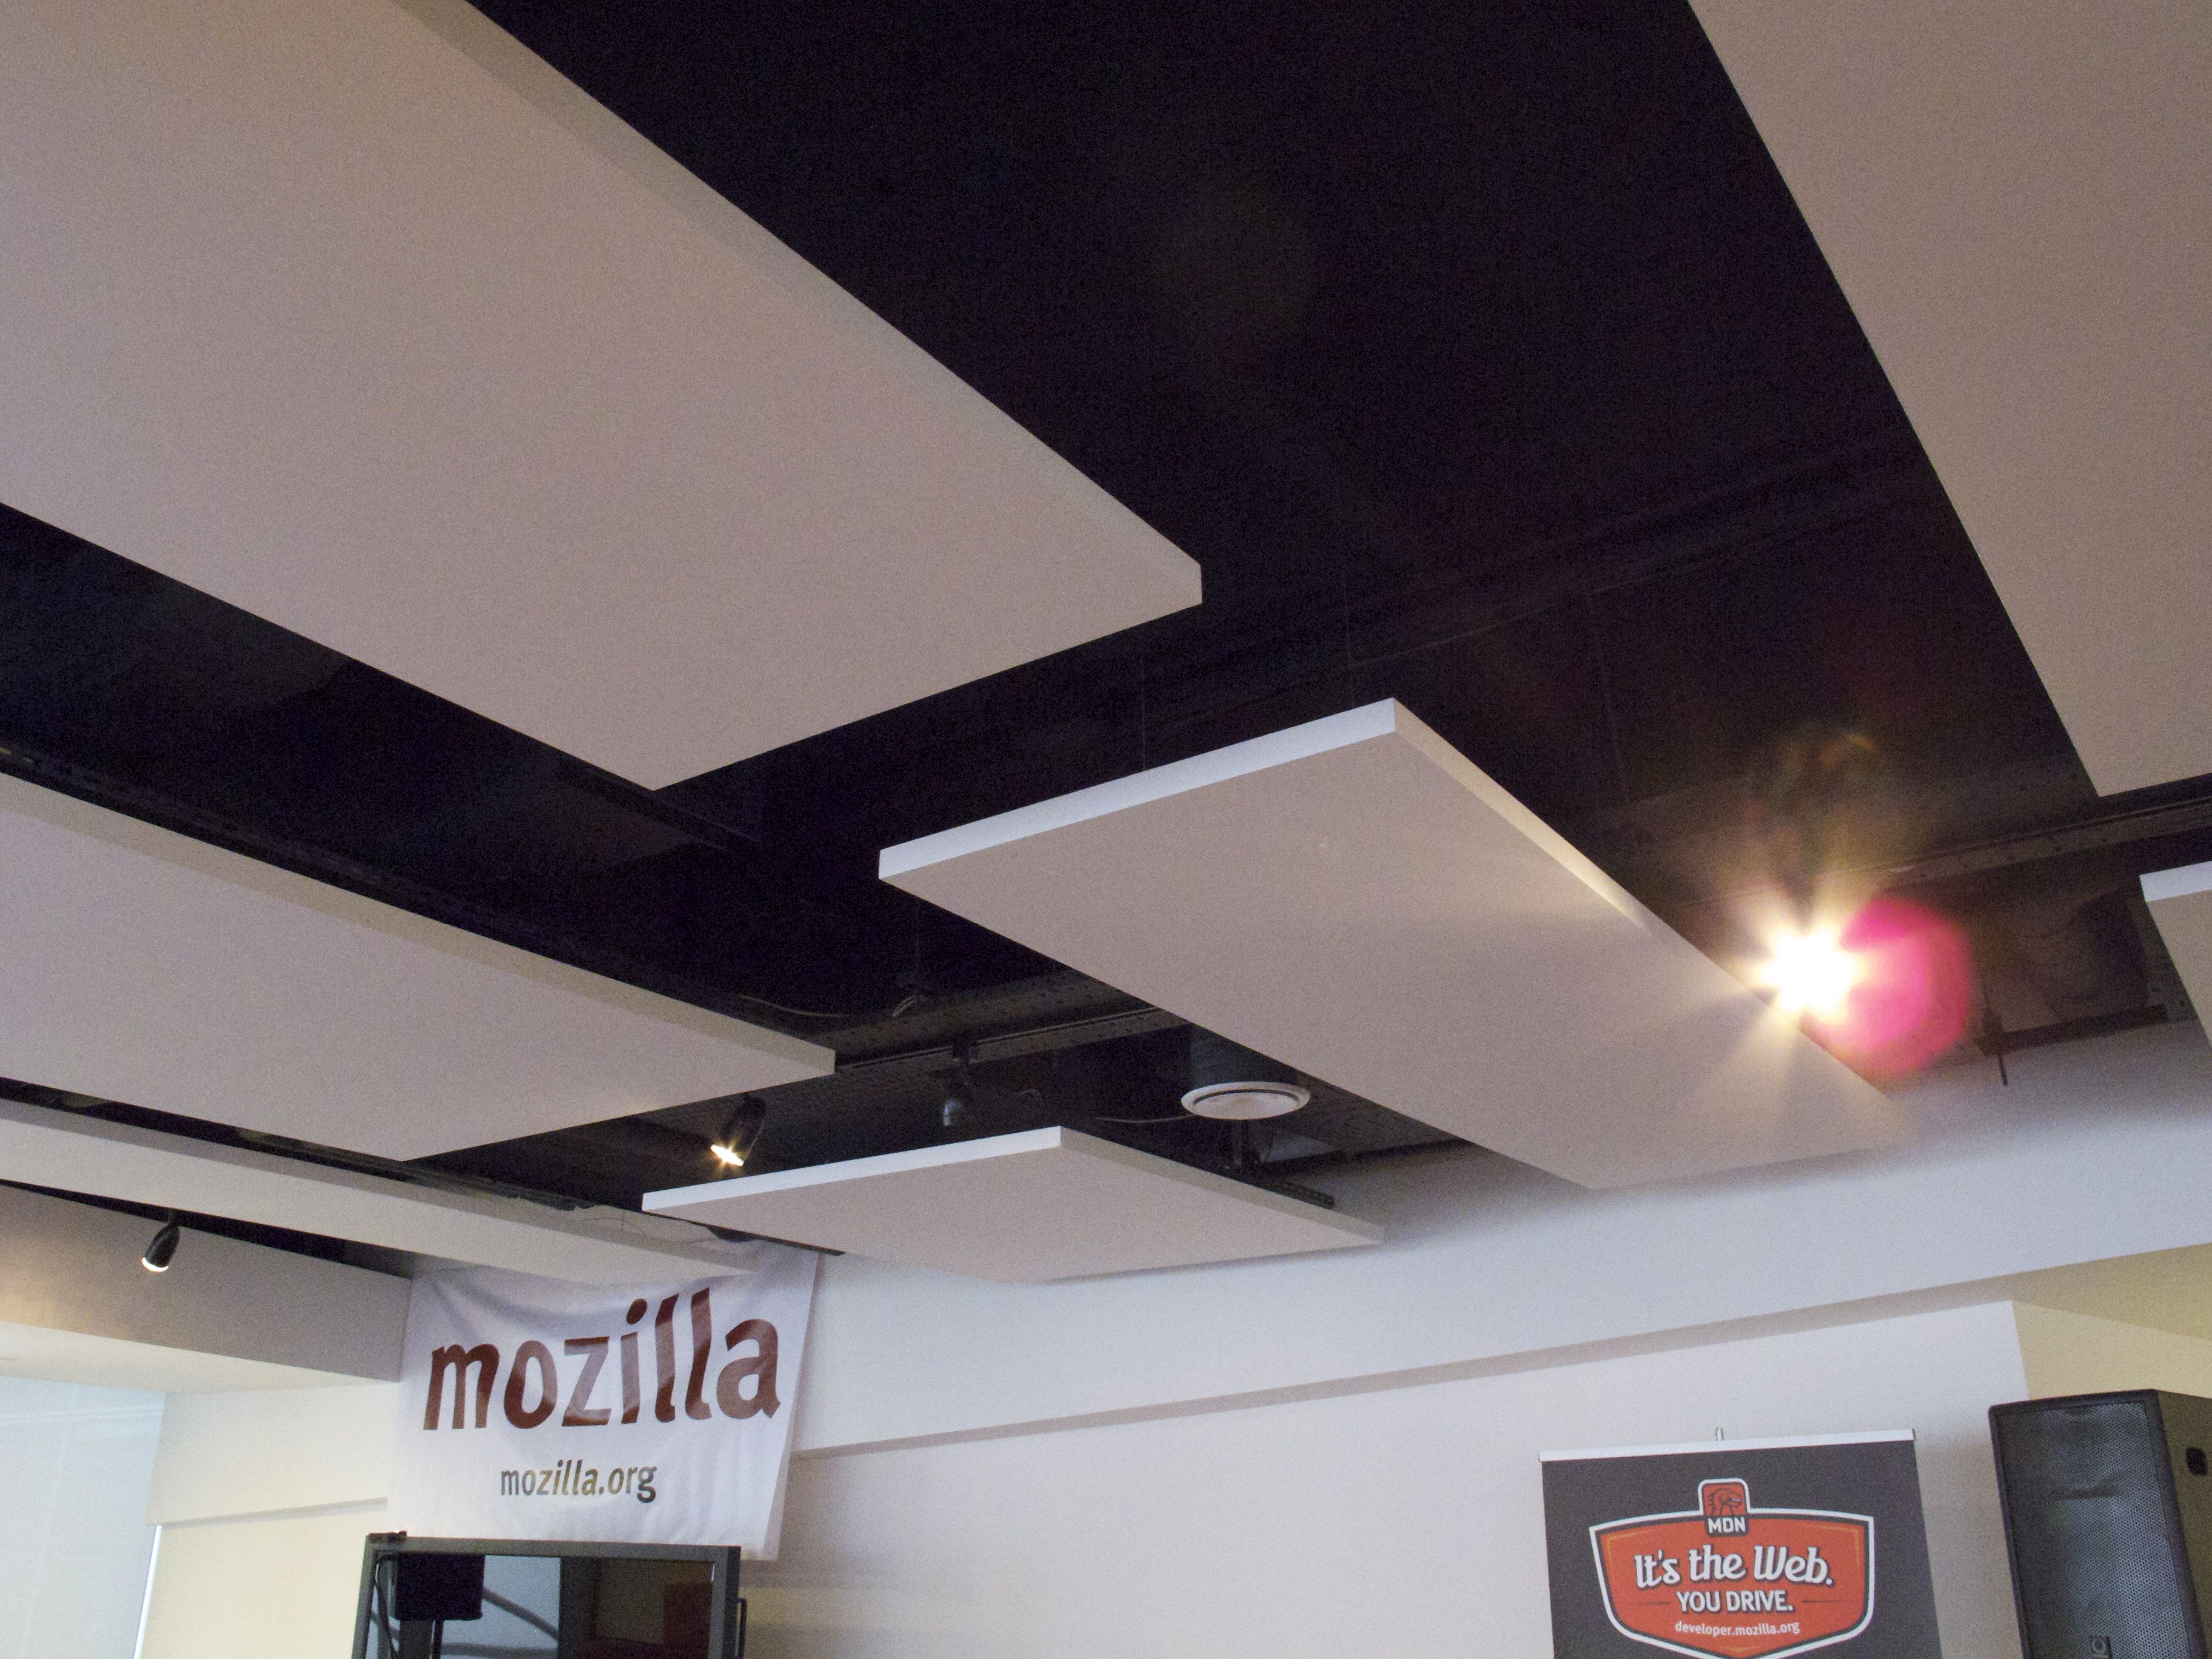 neat alternative to suspended ceiling in areas with ugly overhead